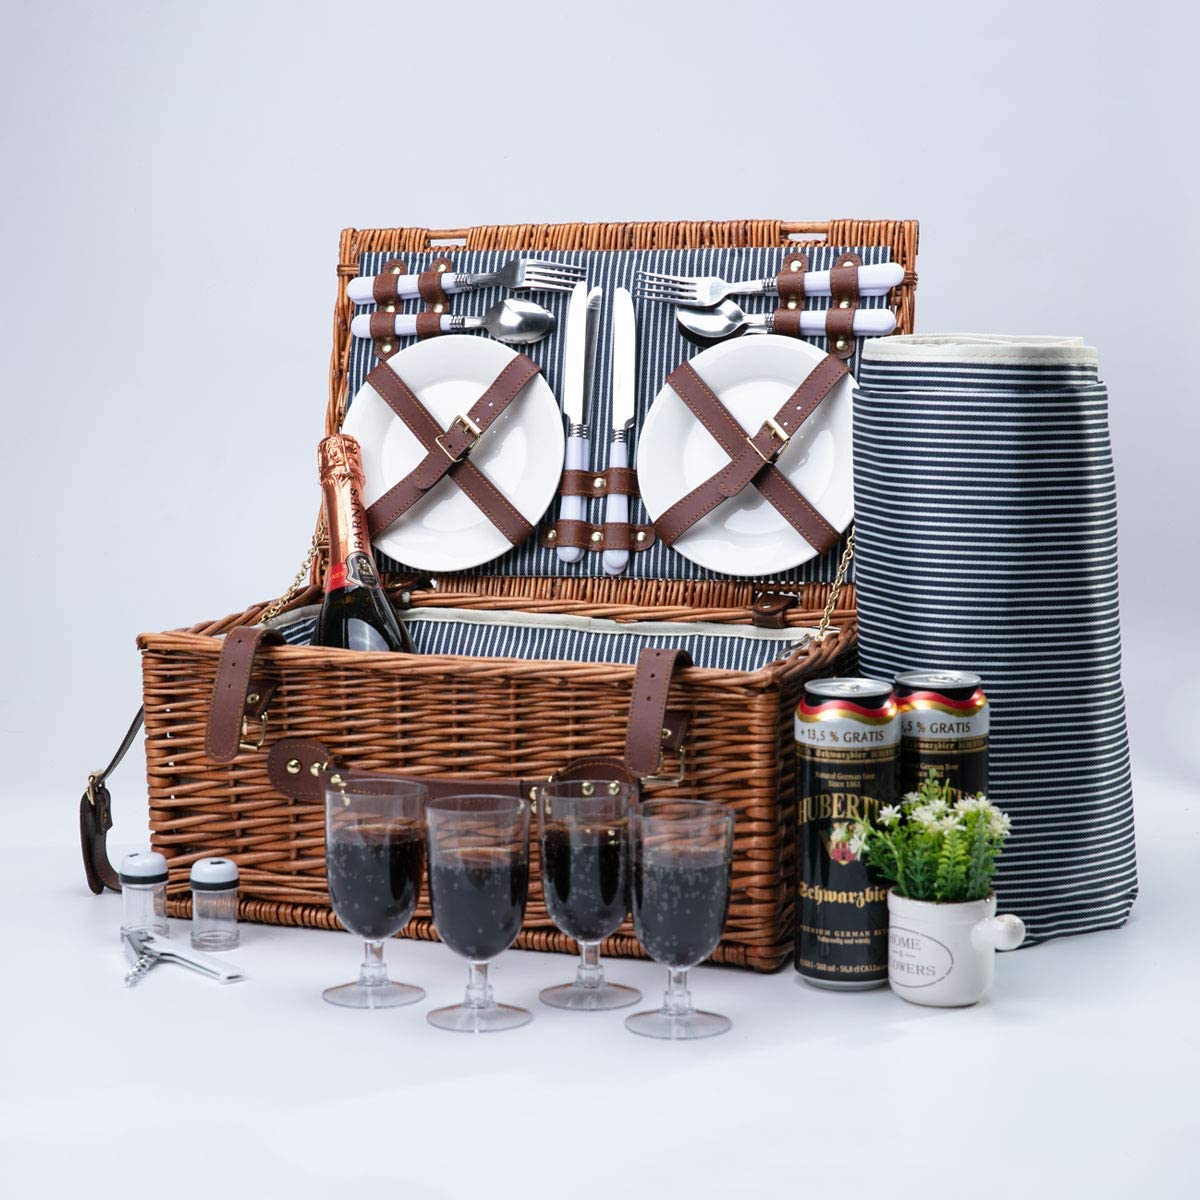 Amazon Com Arkmiido Wicker Picnic Basket Sets For 4 Willow Hamper Cutlery Service Kit With Insulated Cooler Compartment For Camping Outdoor Birthday Part Picnic Basket Sets With Blanket For Family Couples